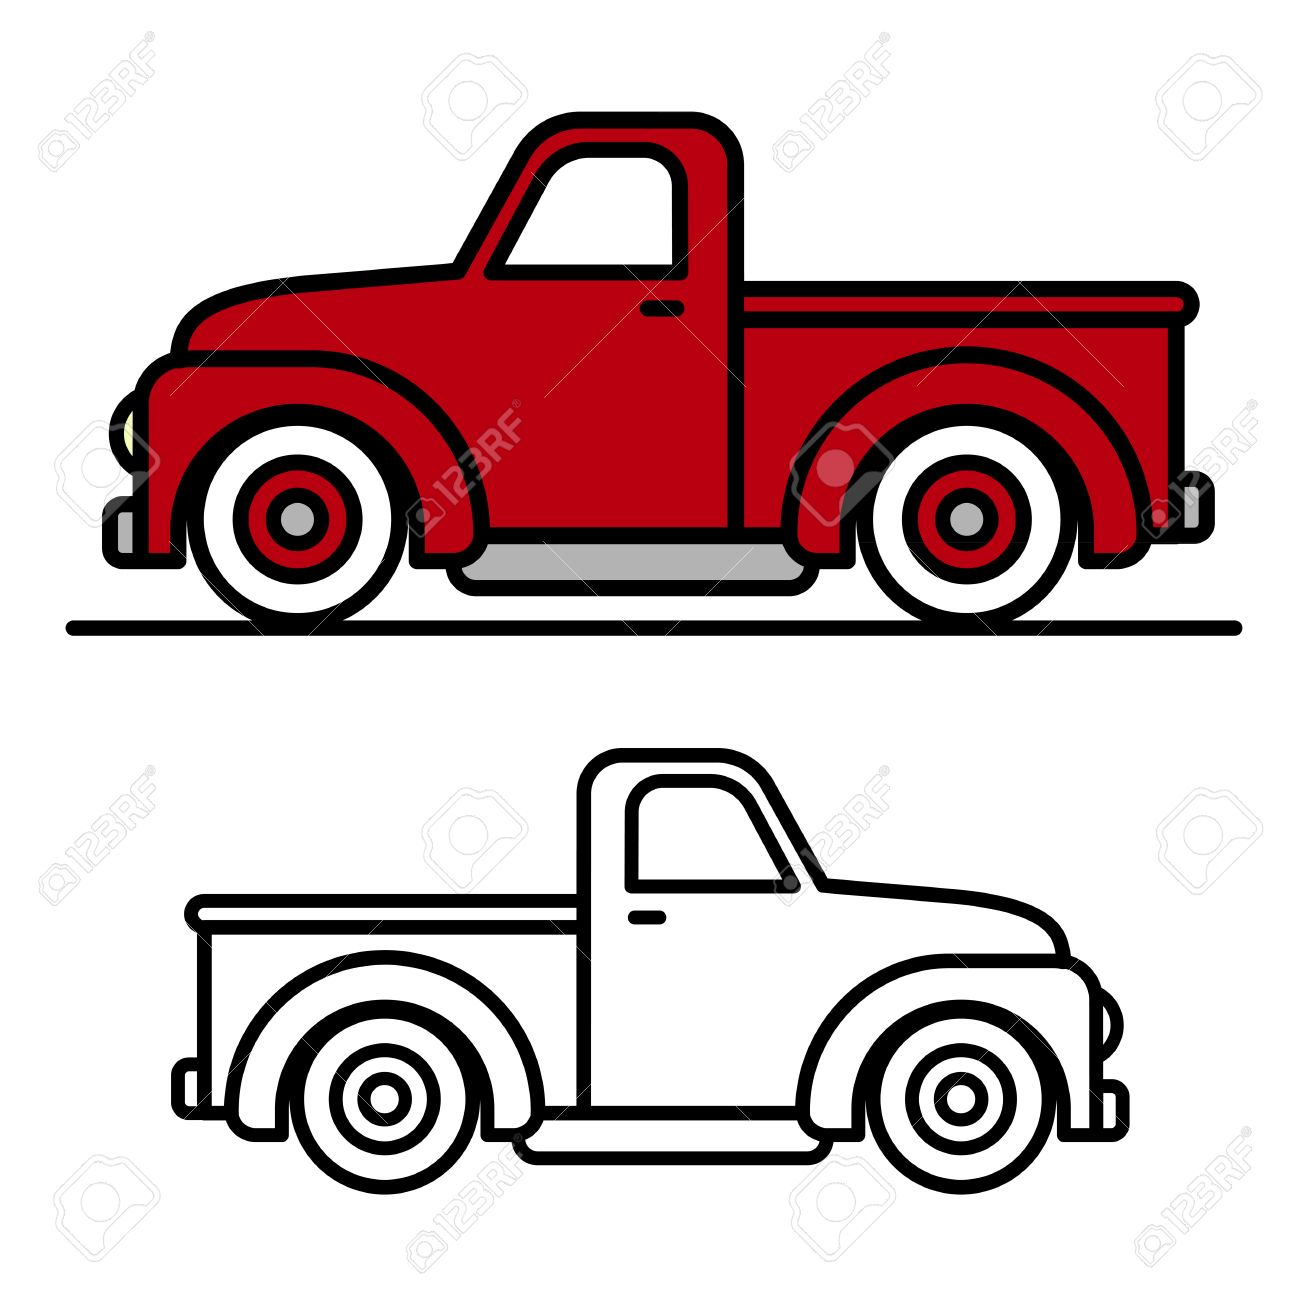 two cartoon vintage pick up truck outline drawings one red and